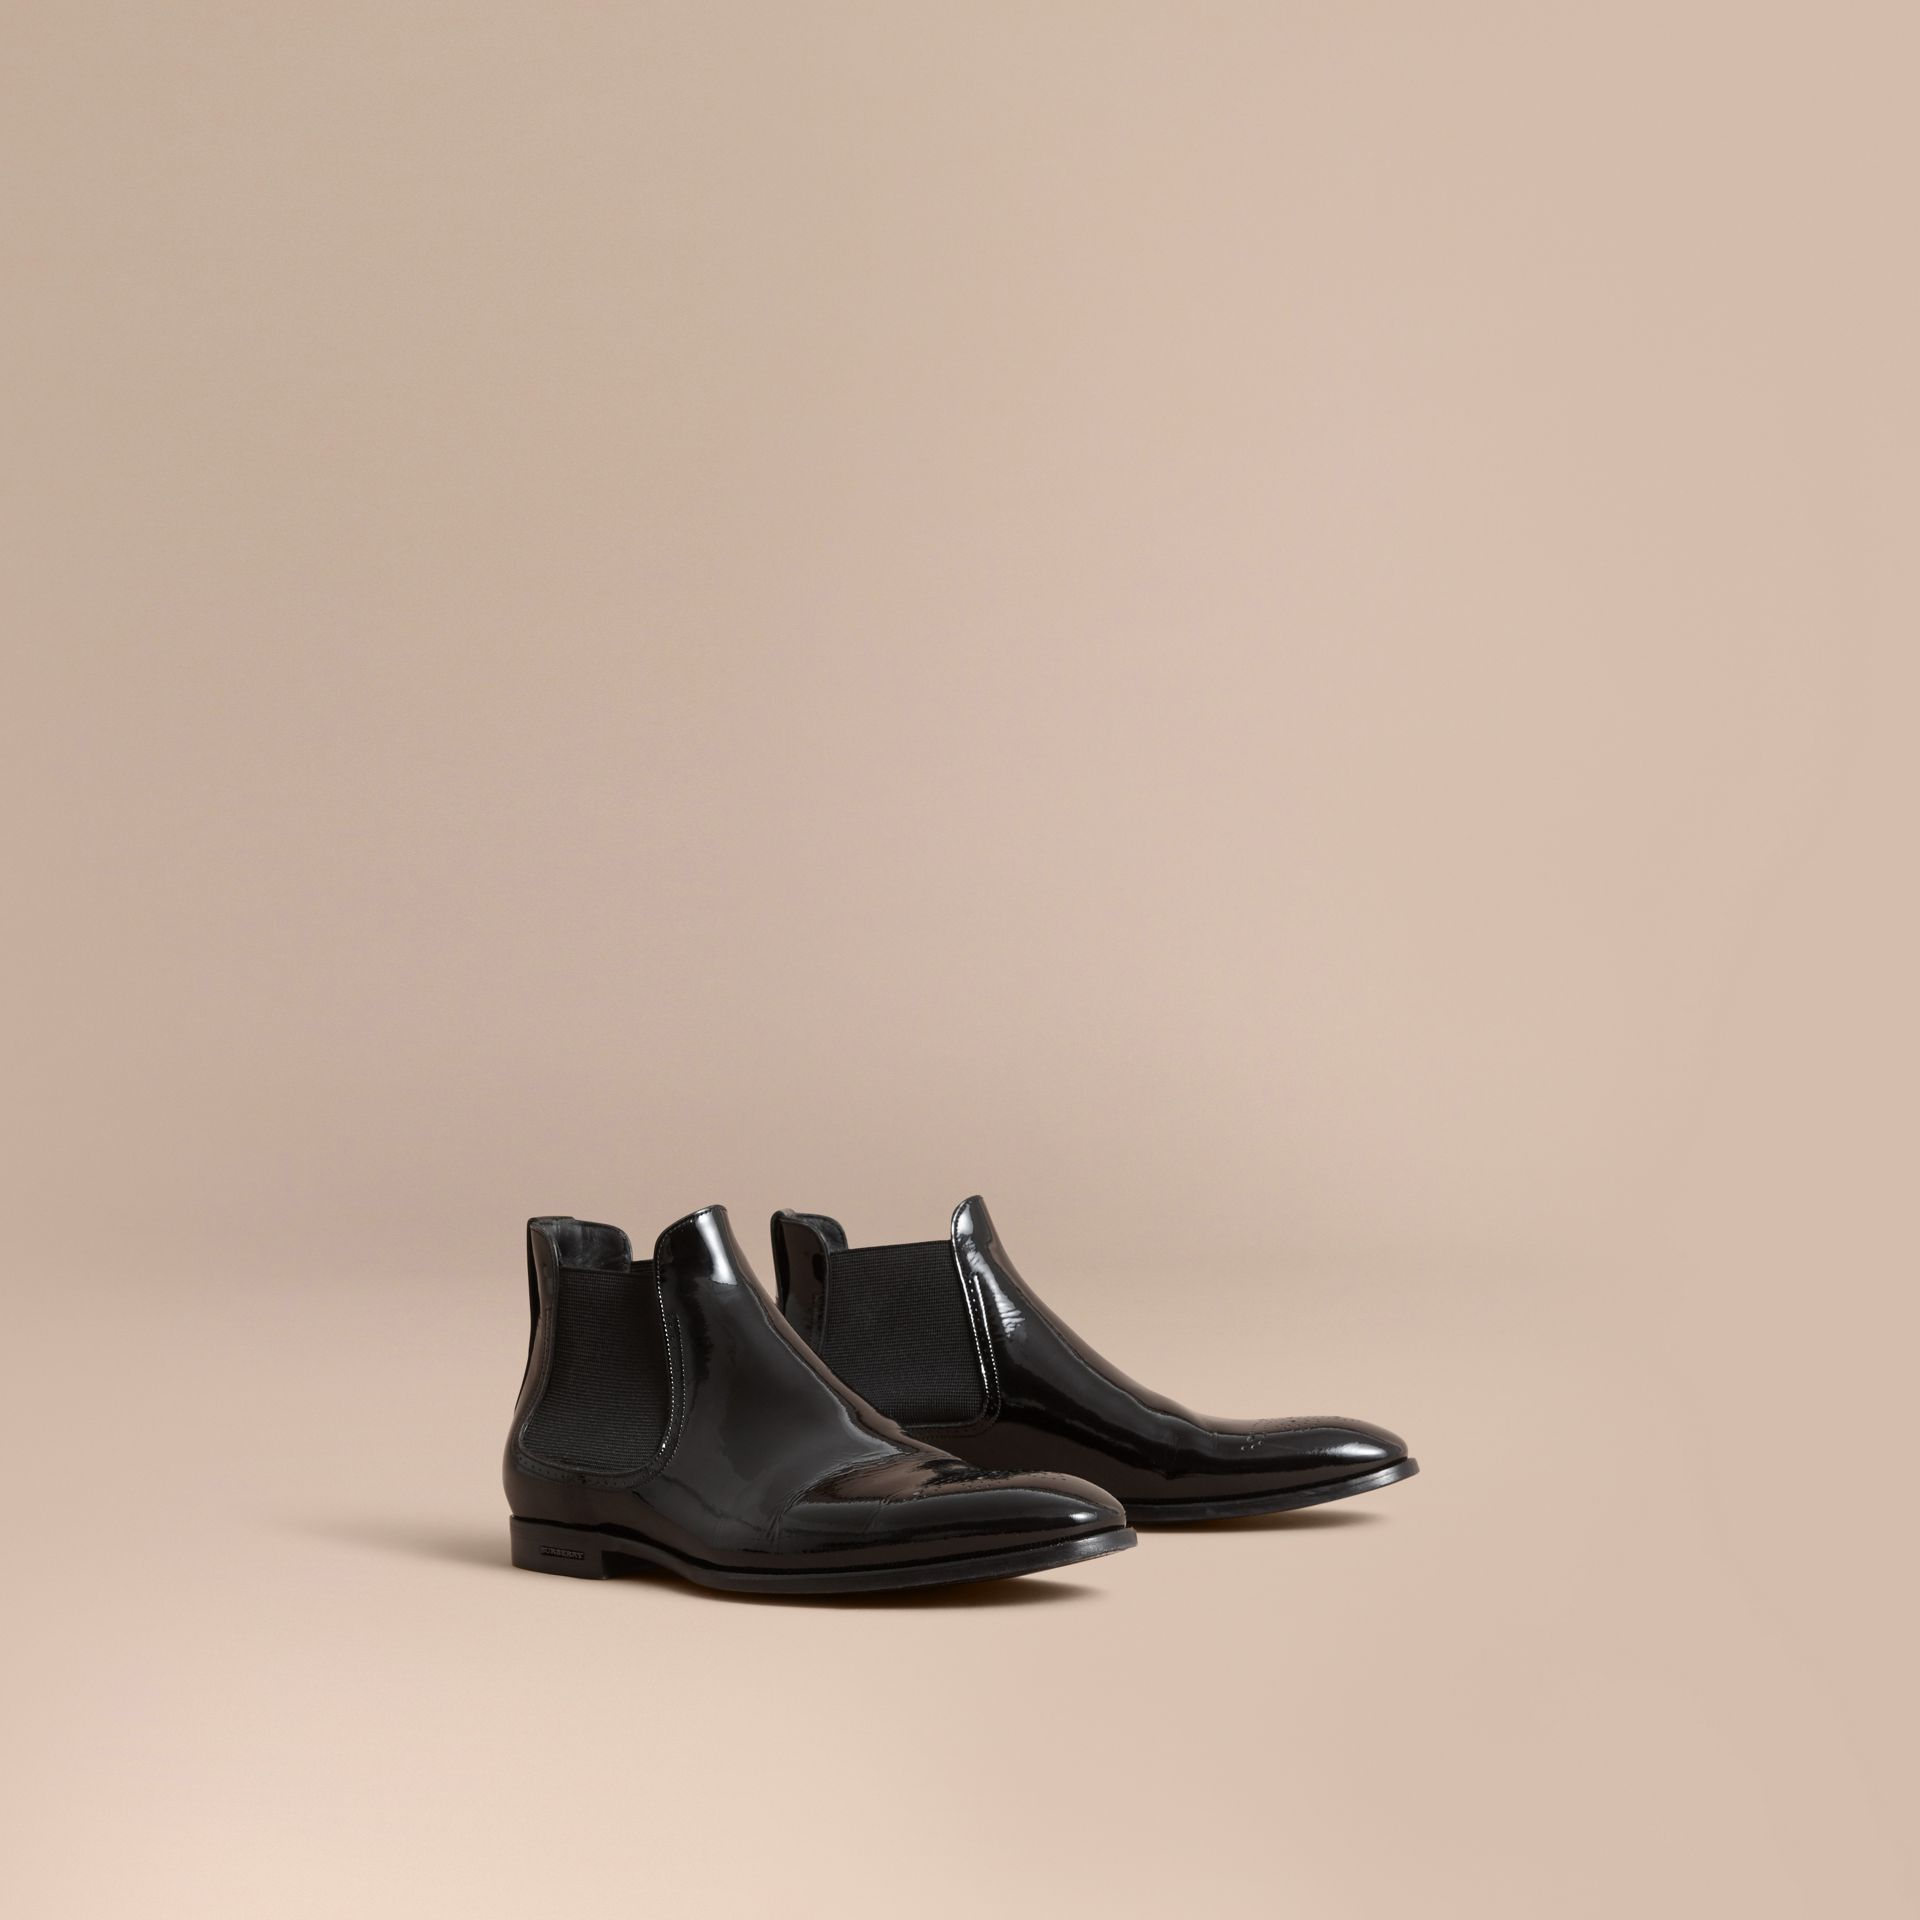 Polished Leather Chelsea Boots in Black - Men | Burberry - gallery image 1